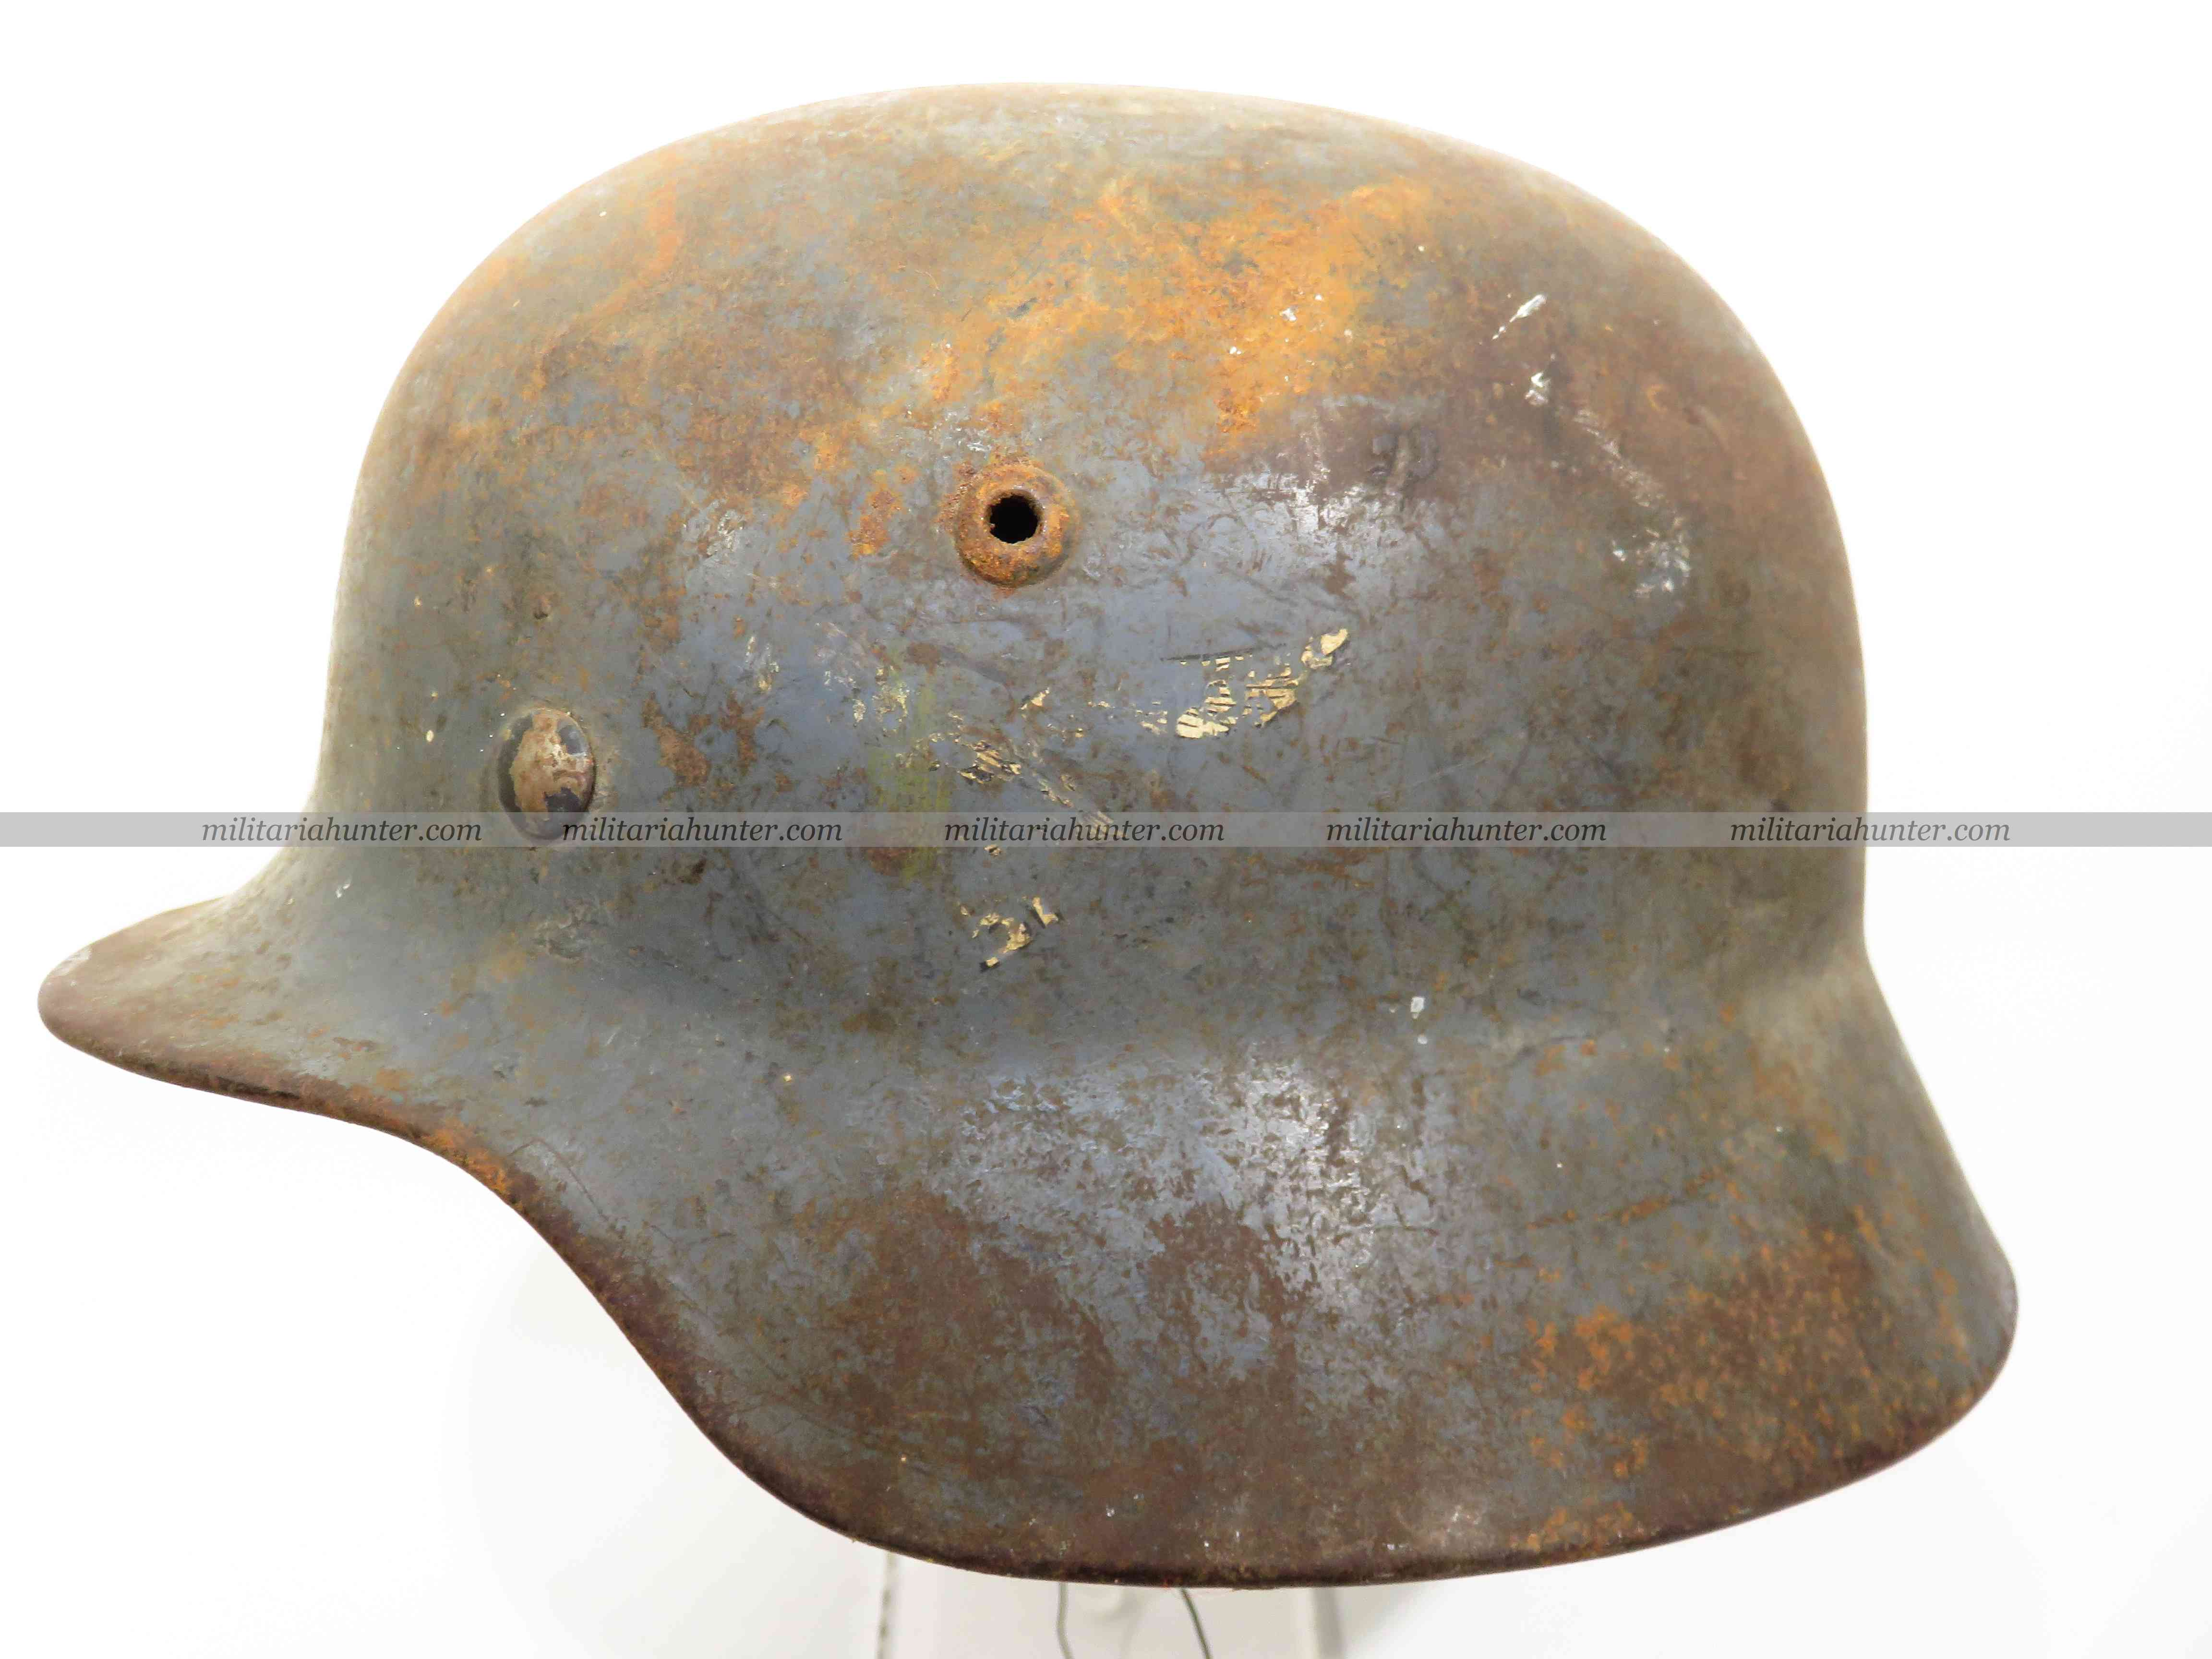 militaria : ww2 german helmet Stahlhelm M35 Luftwaffe SD